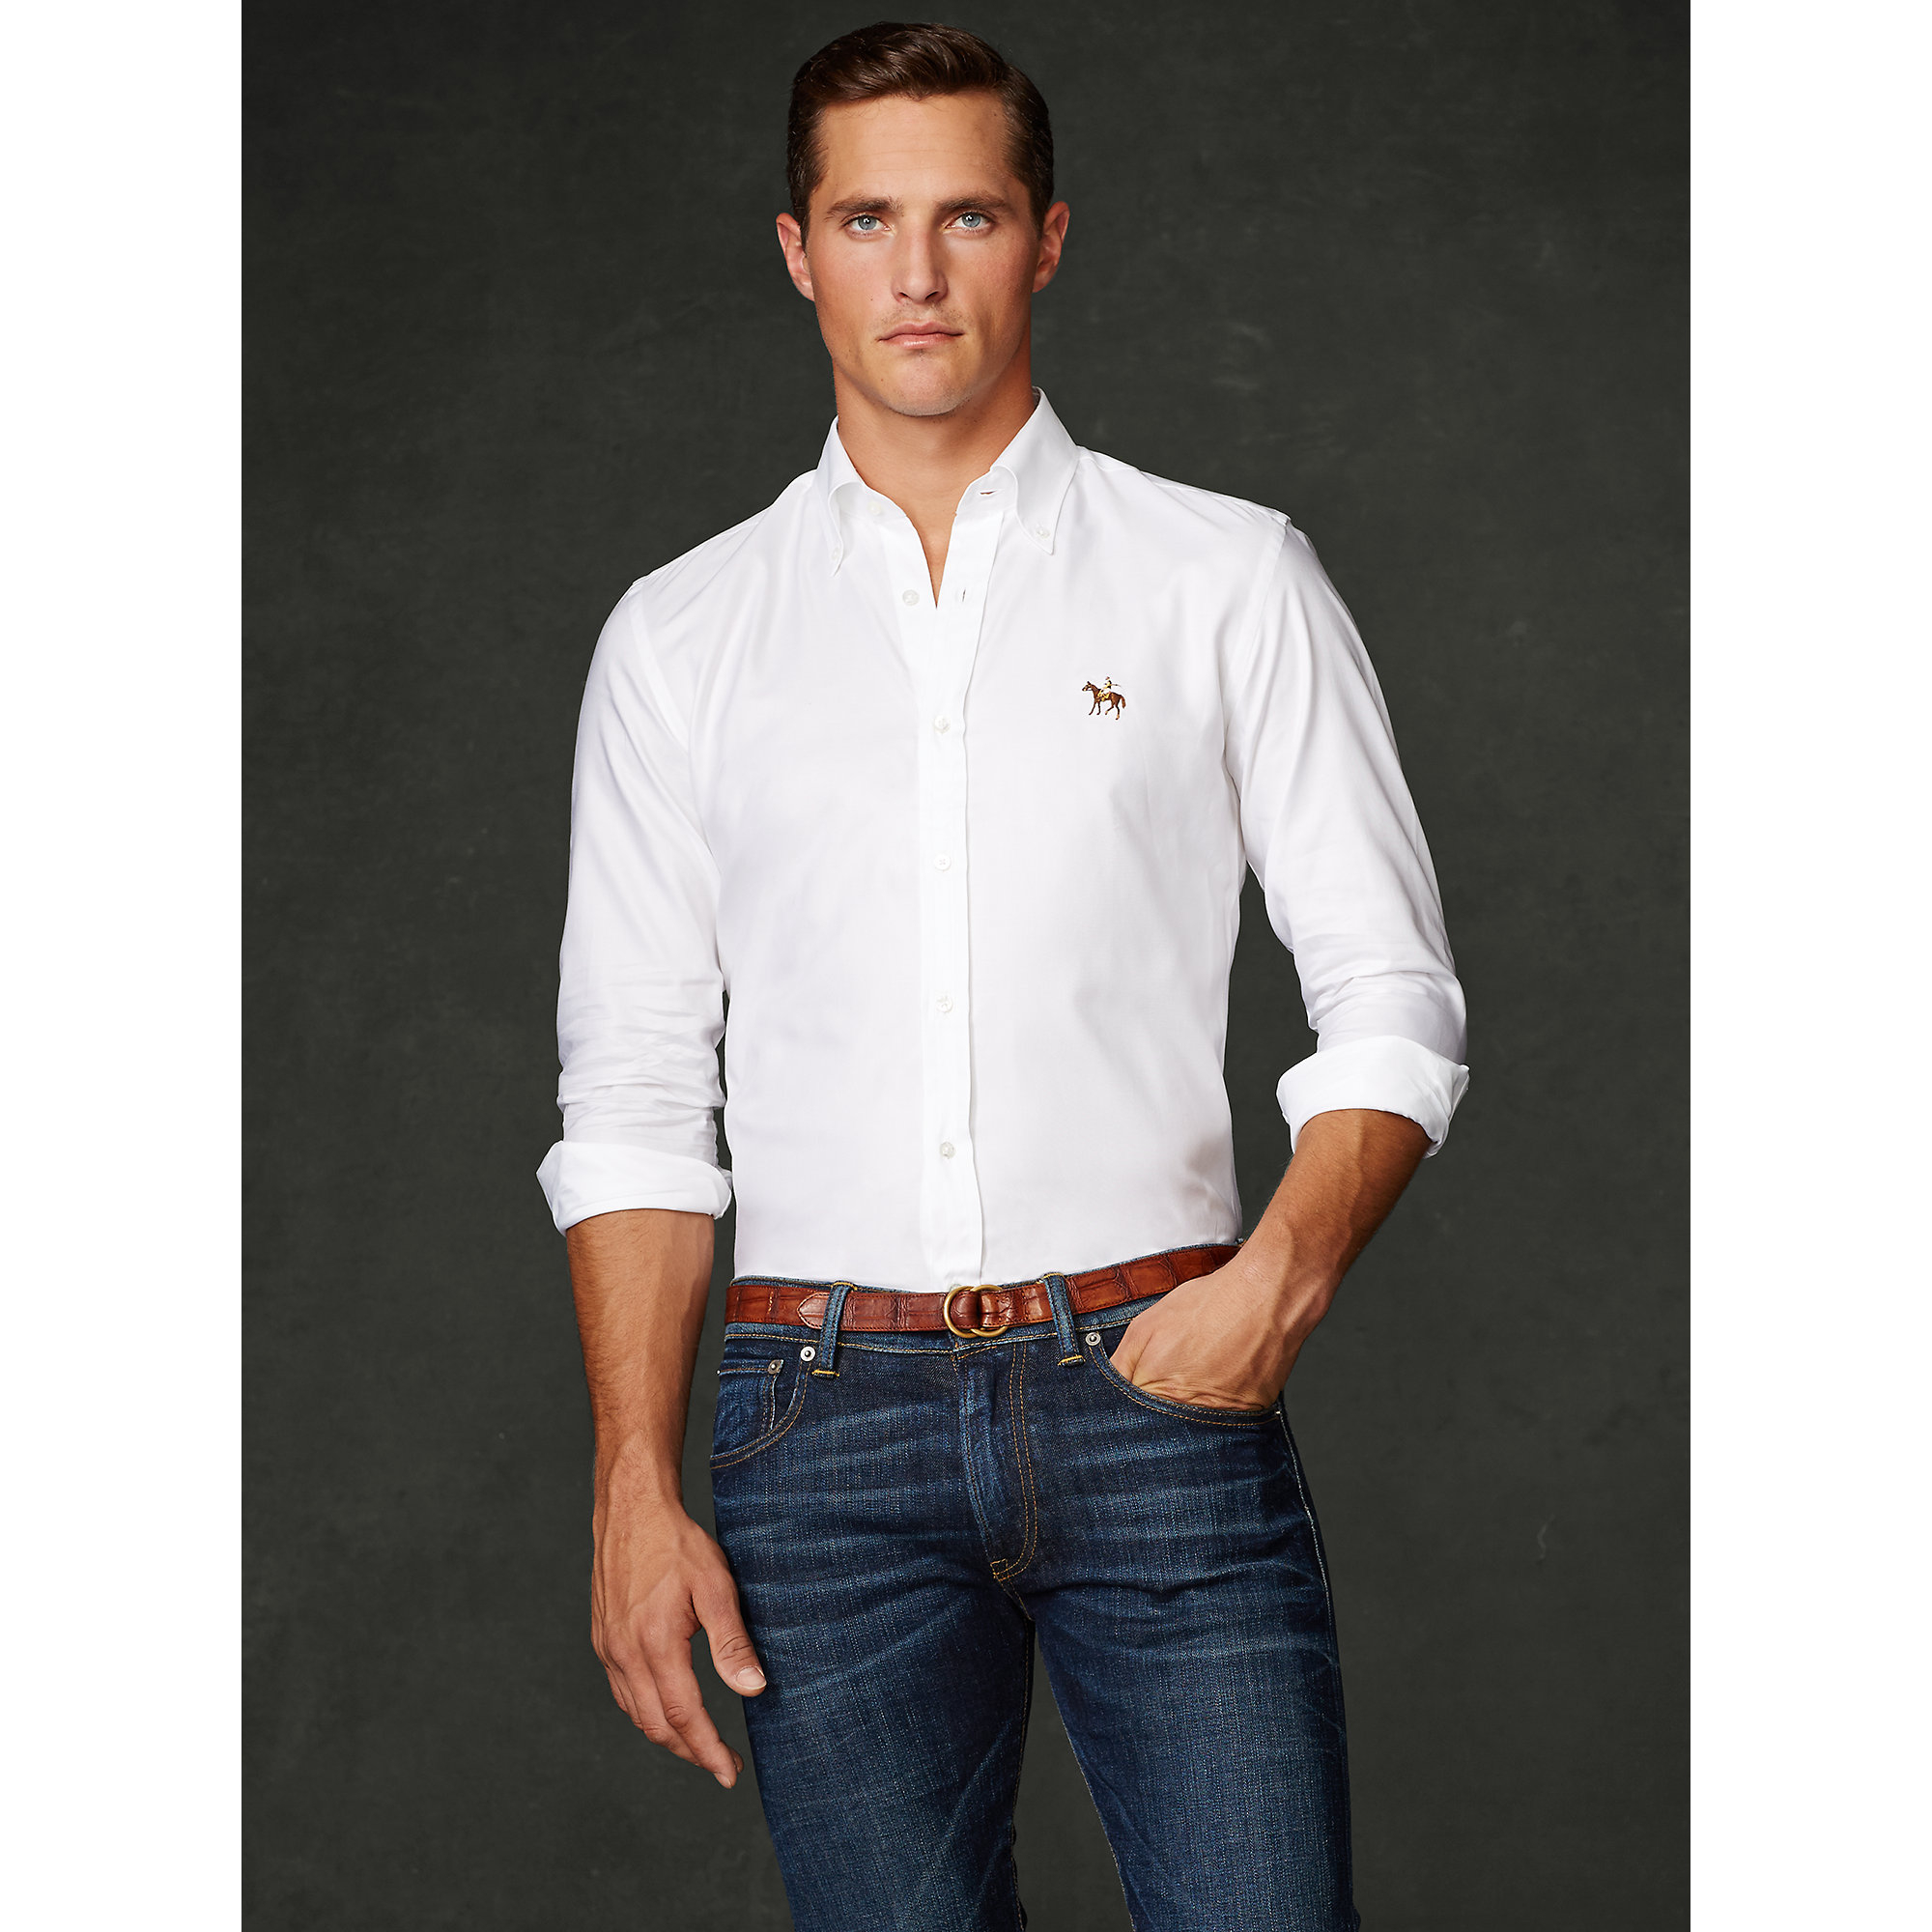 Lyst - Ralph Lauren Purple Label Classic Oxford Sport Shirt in White for Men